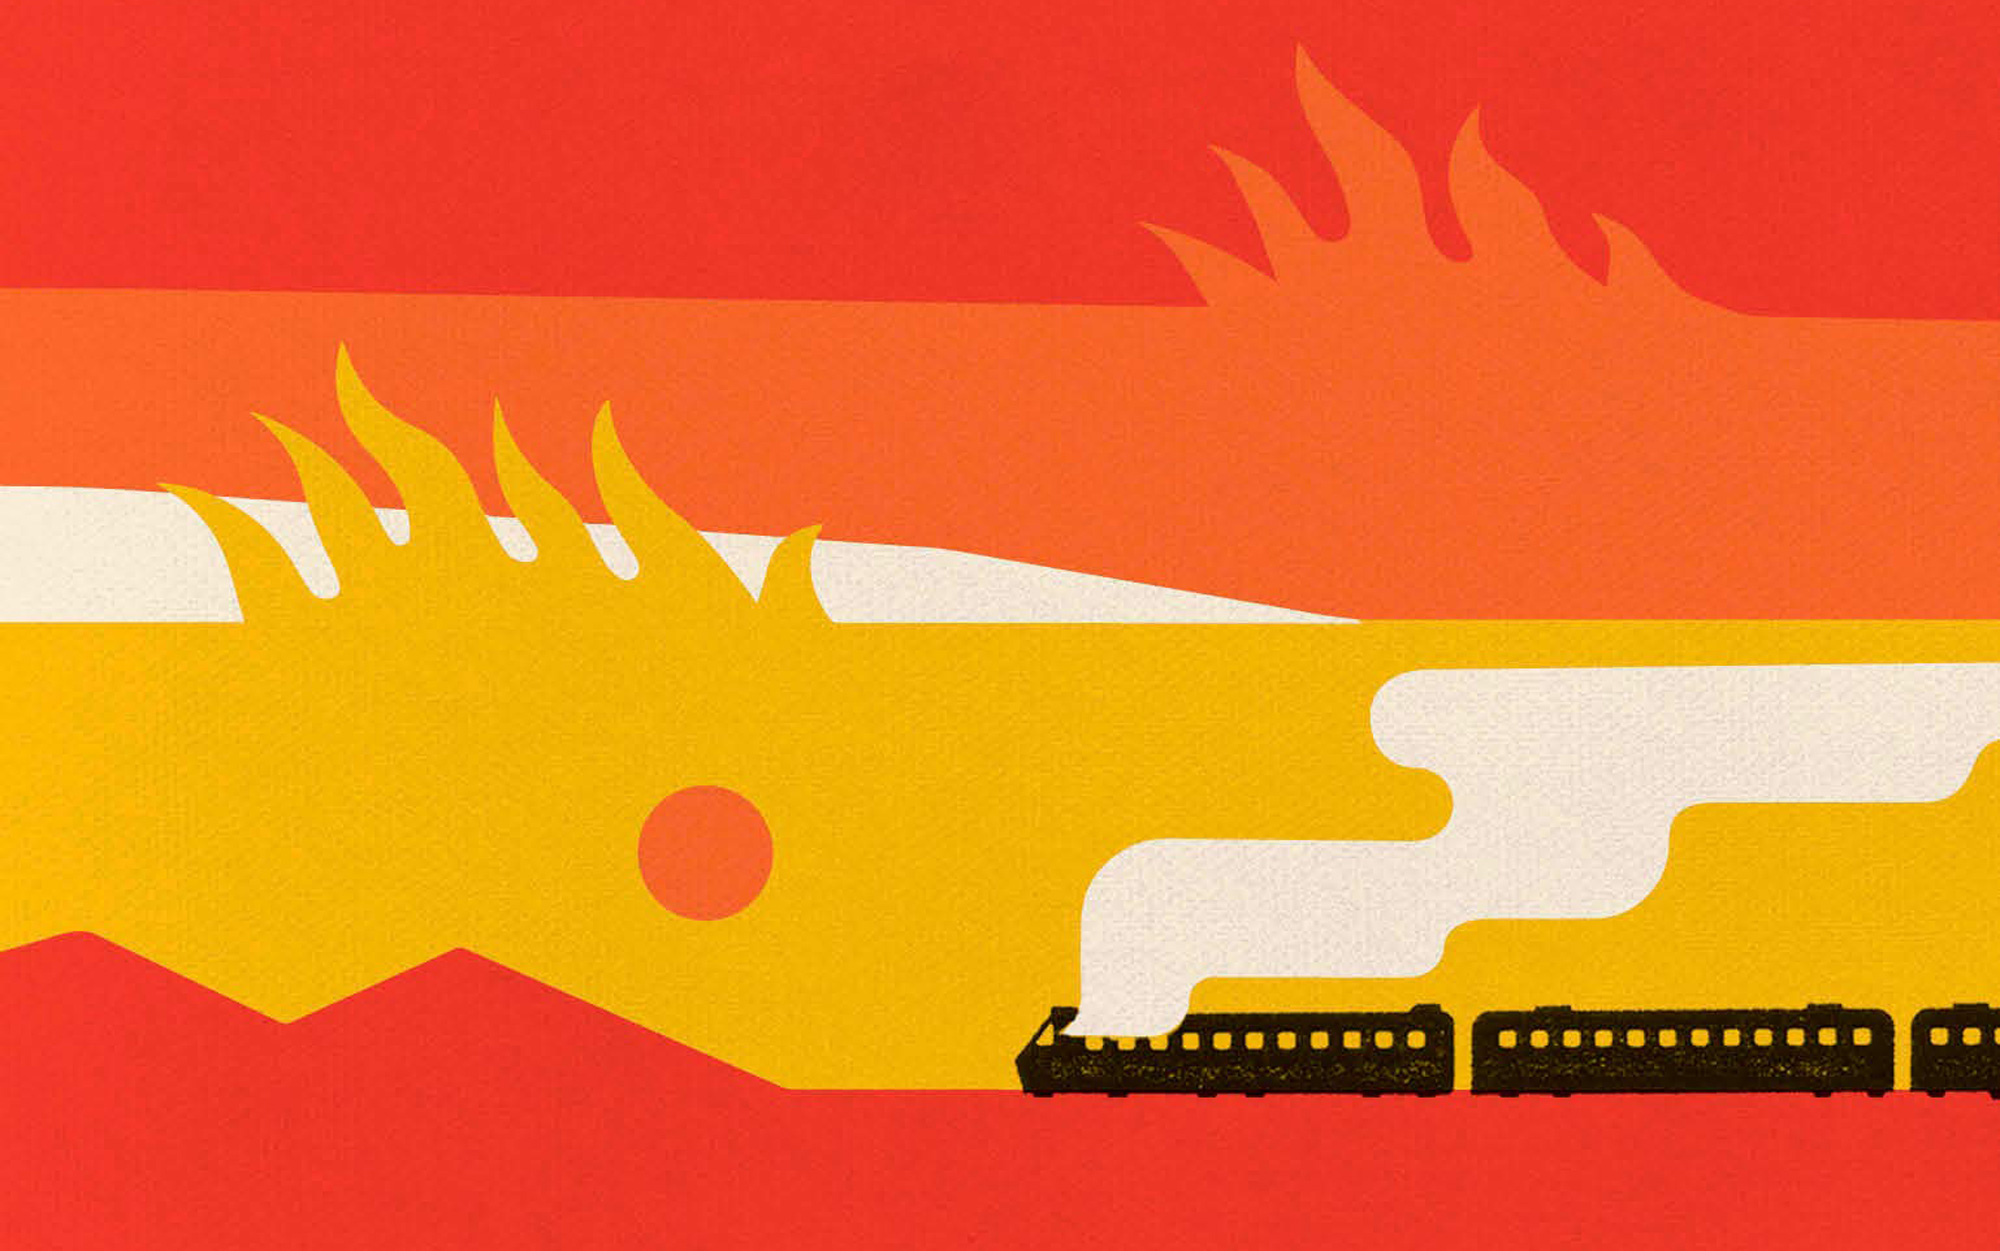 A Burning, red, yellow, and orange book cover that features an illustration of a train engulfed in smoke